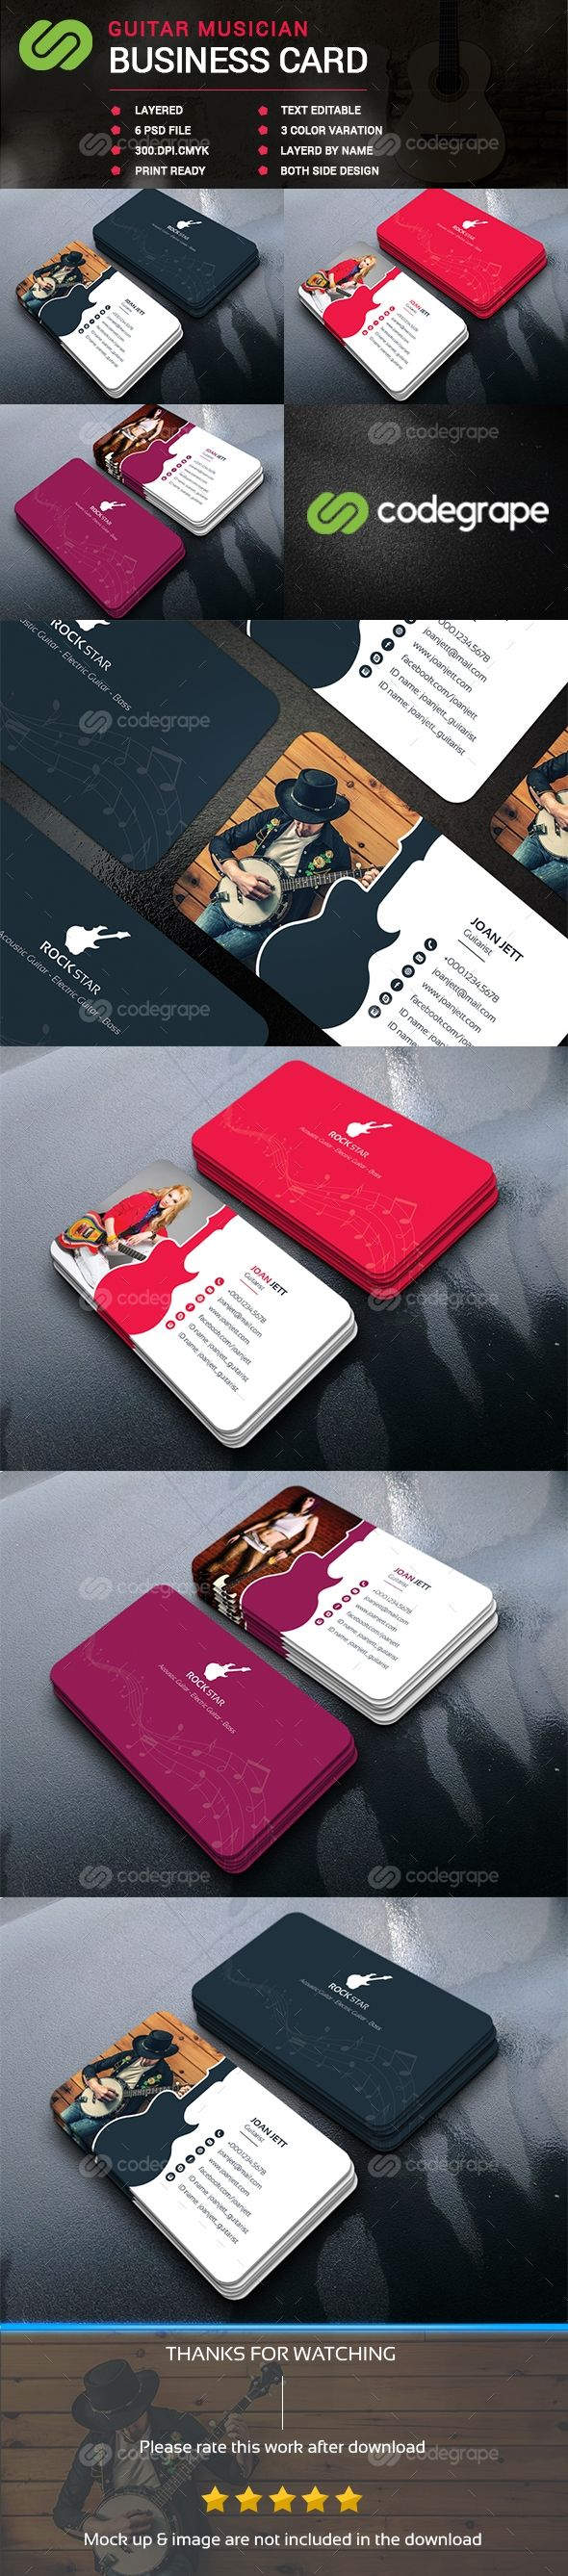 Guitar Musician Business Card | Business cards, Card templates and ...